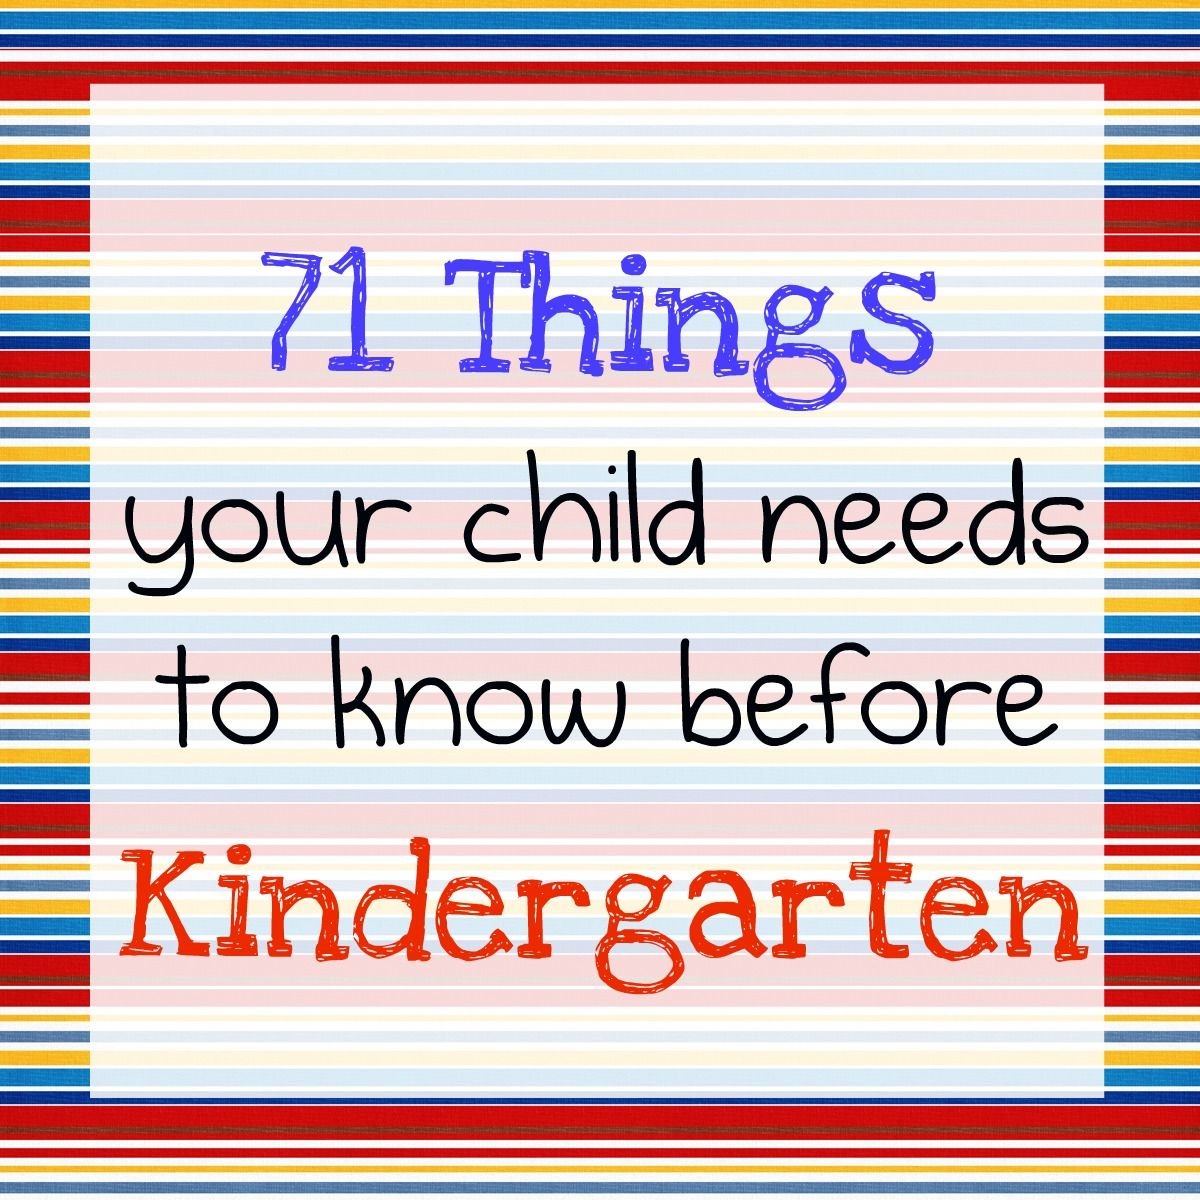 Kindergarten Readiness: 71 Things Your Child Needs To Know | Tips